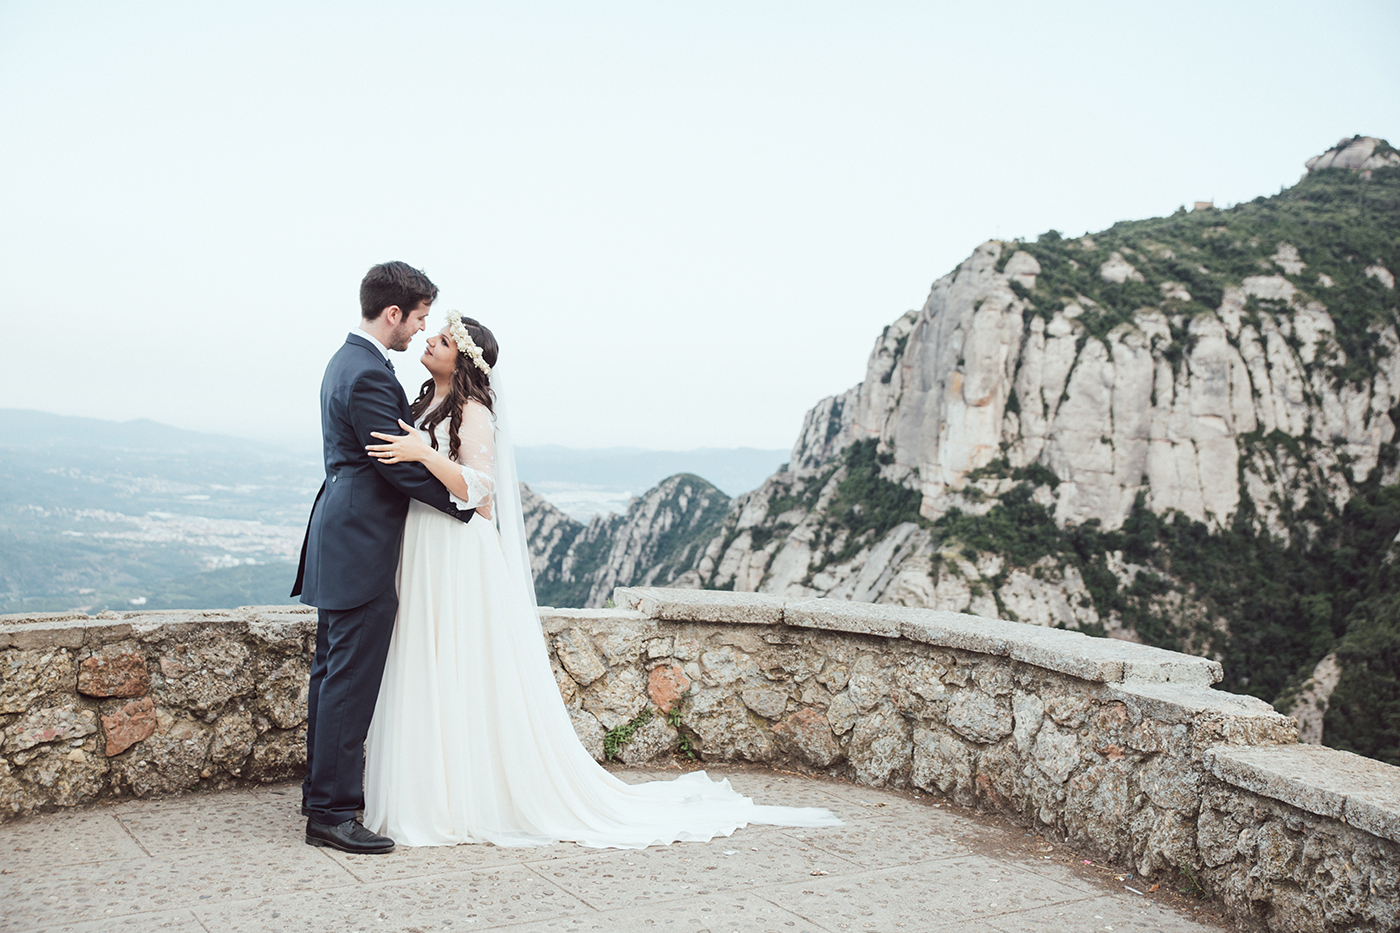 Nicole + Victor | Magical wedding shoot at Montserrat